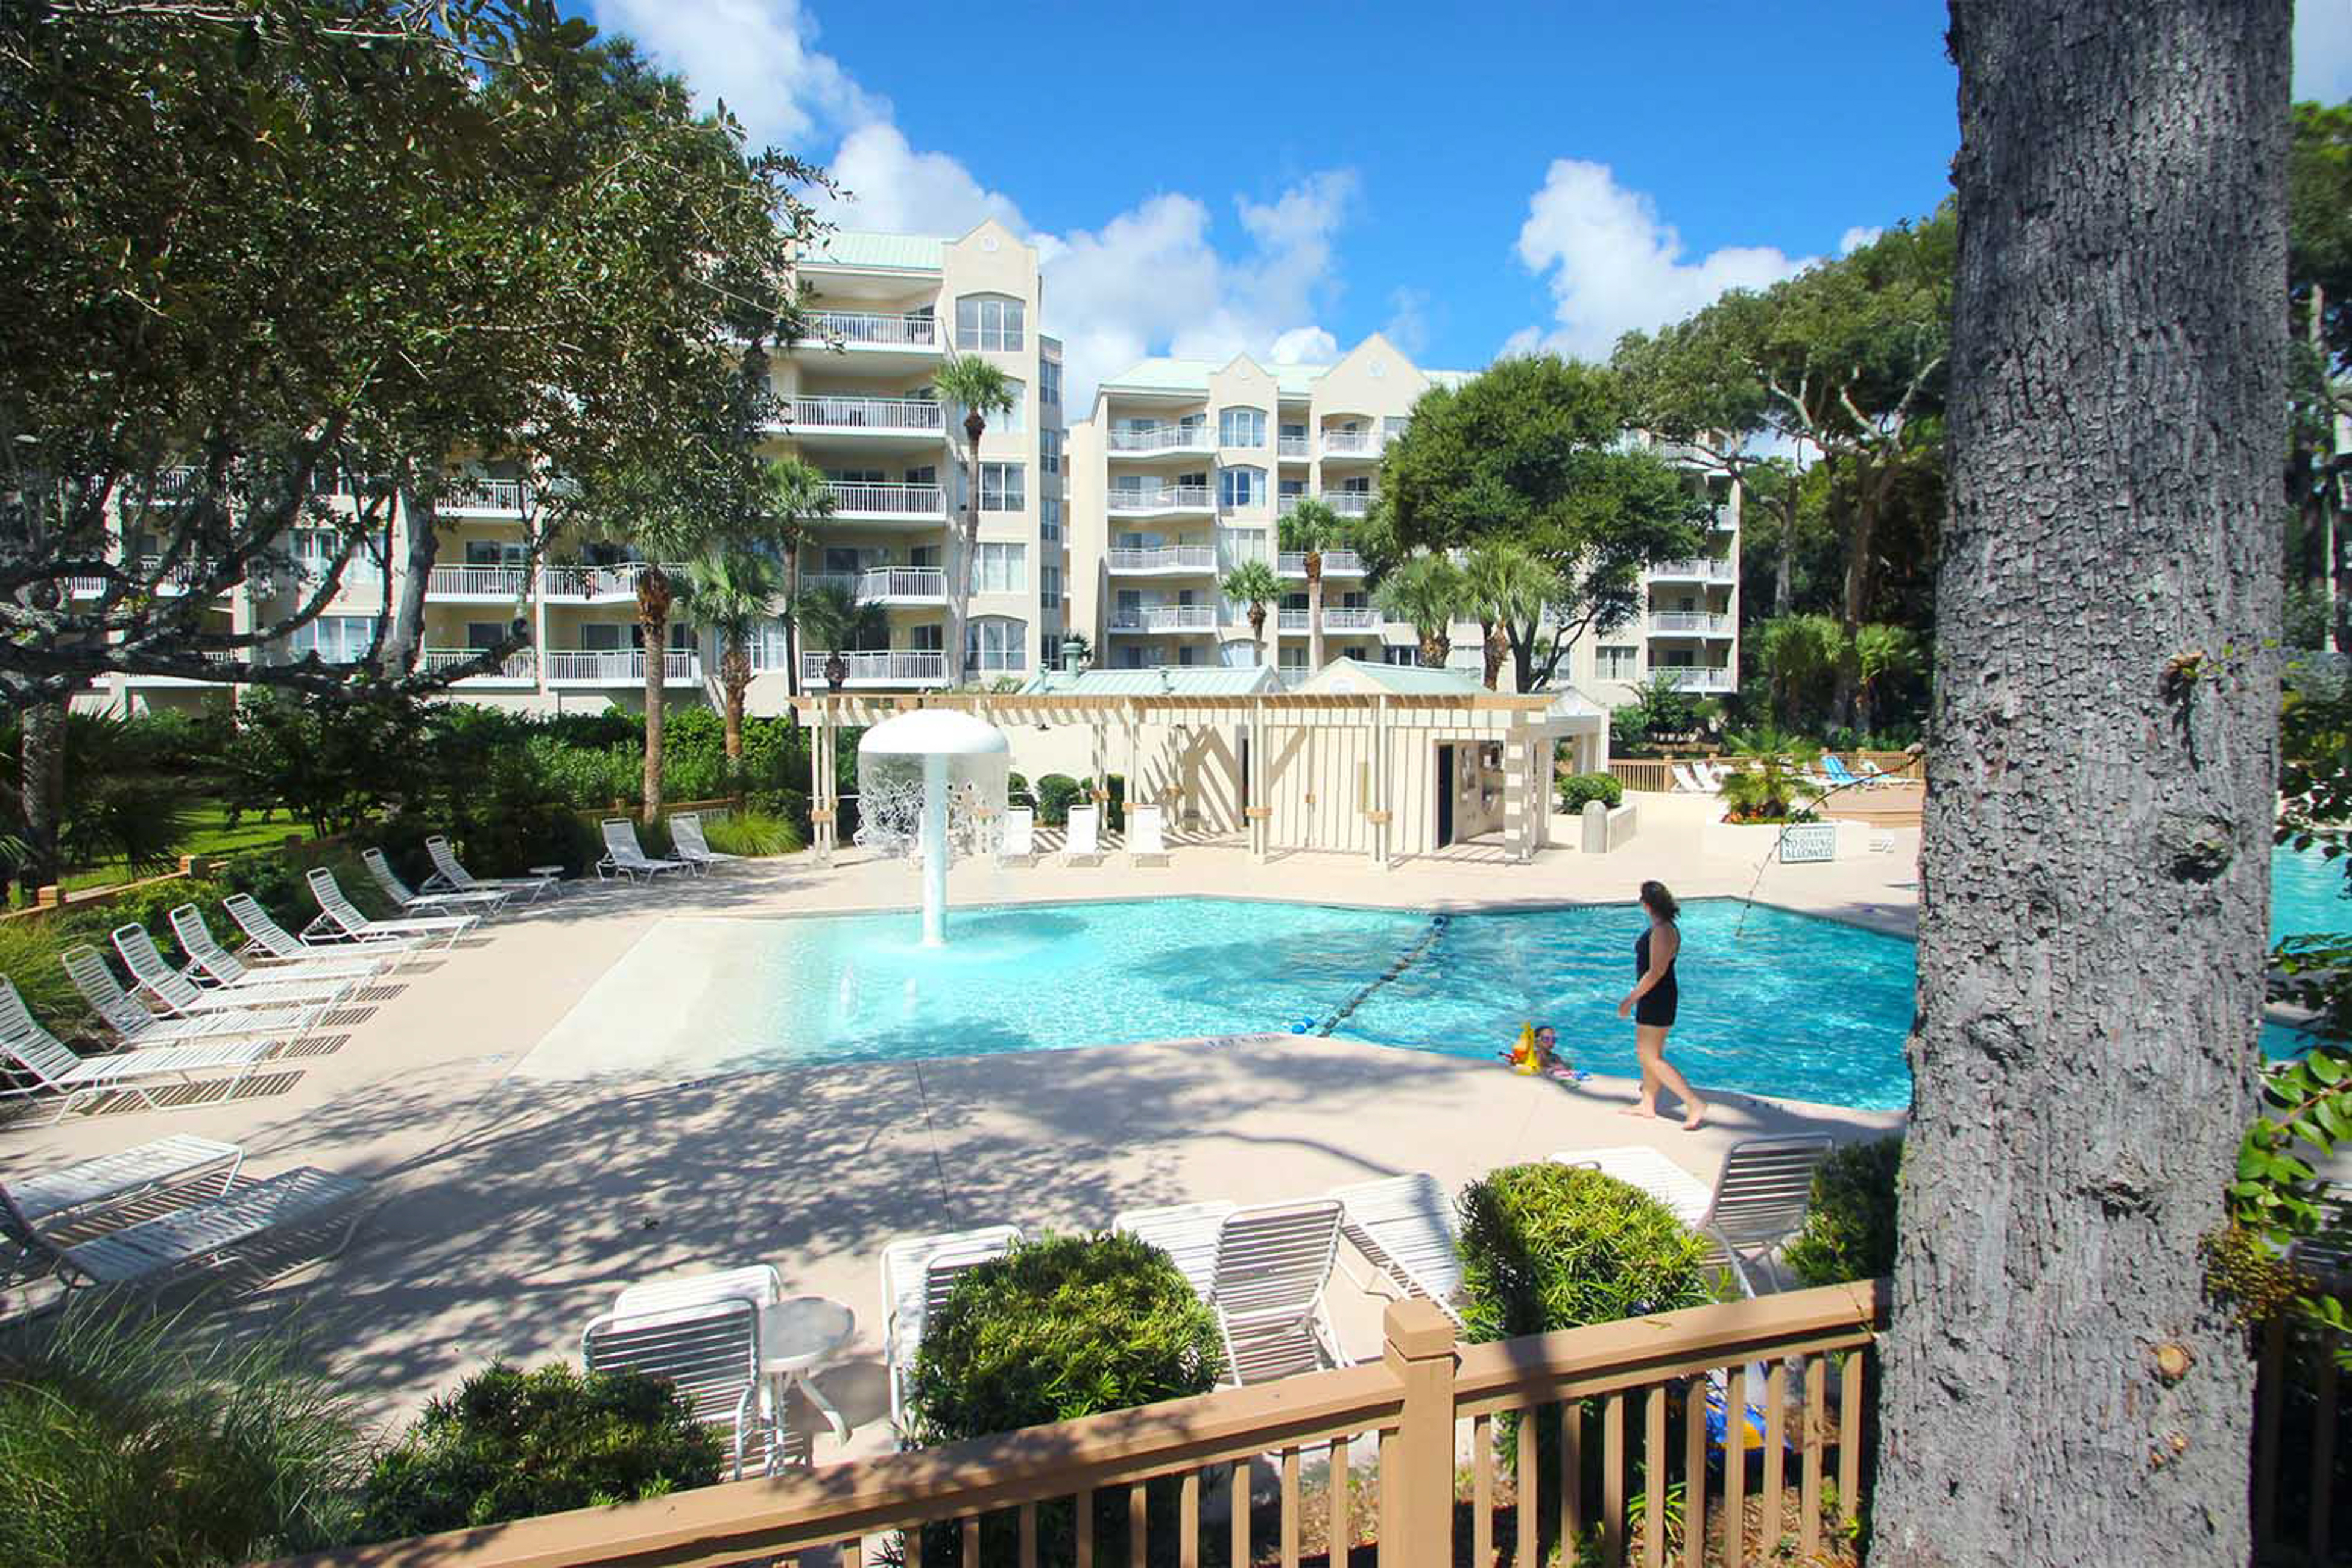 Windsor Place 310 Vacation Rental In Hilton Head Sc Hhi Vacasa